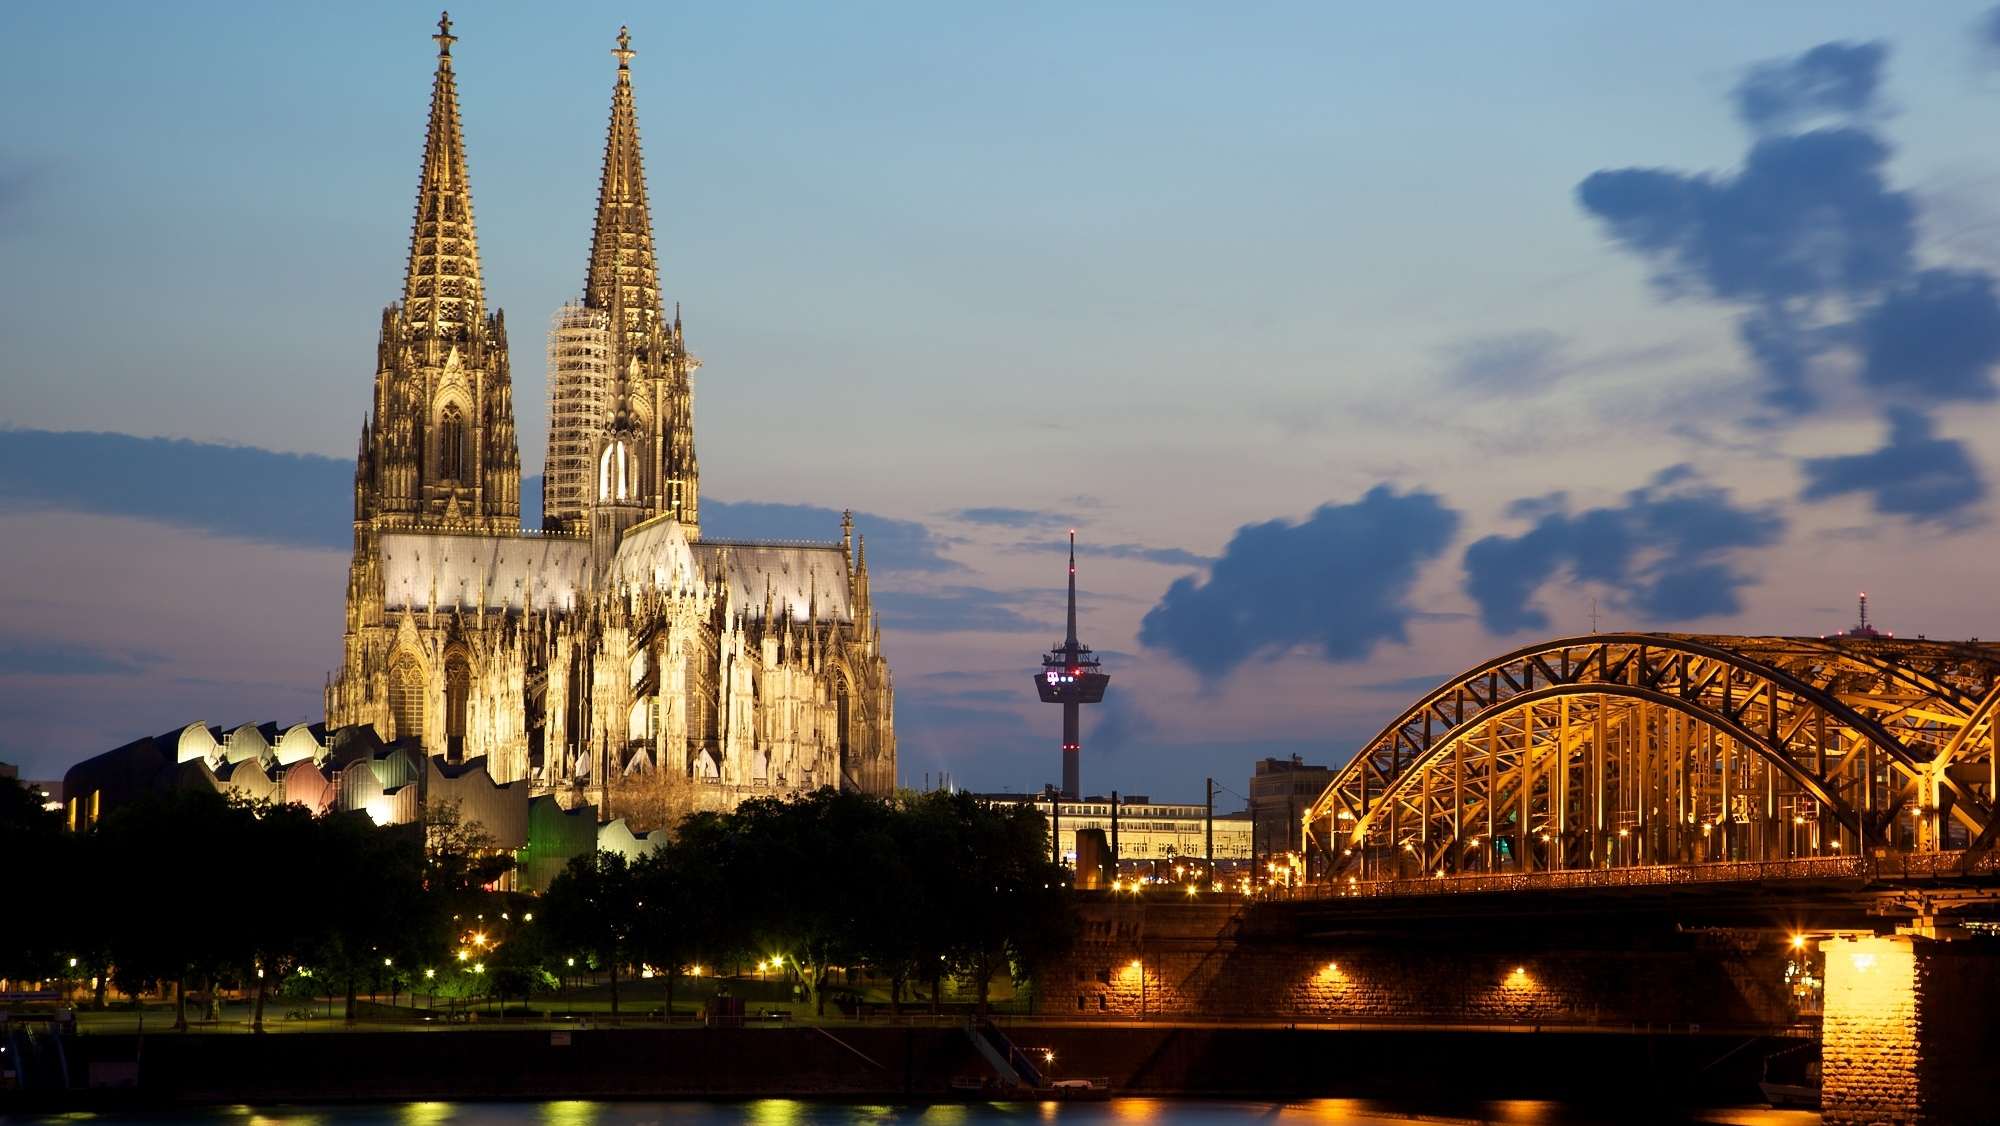 nha-tho-the-cologne-aussietravel